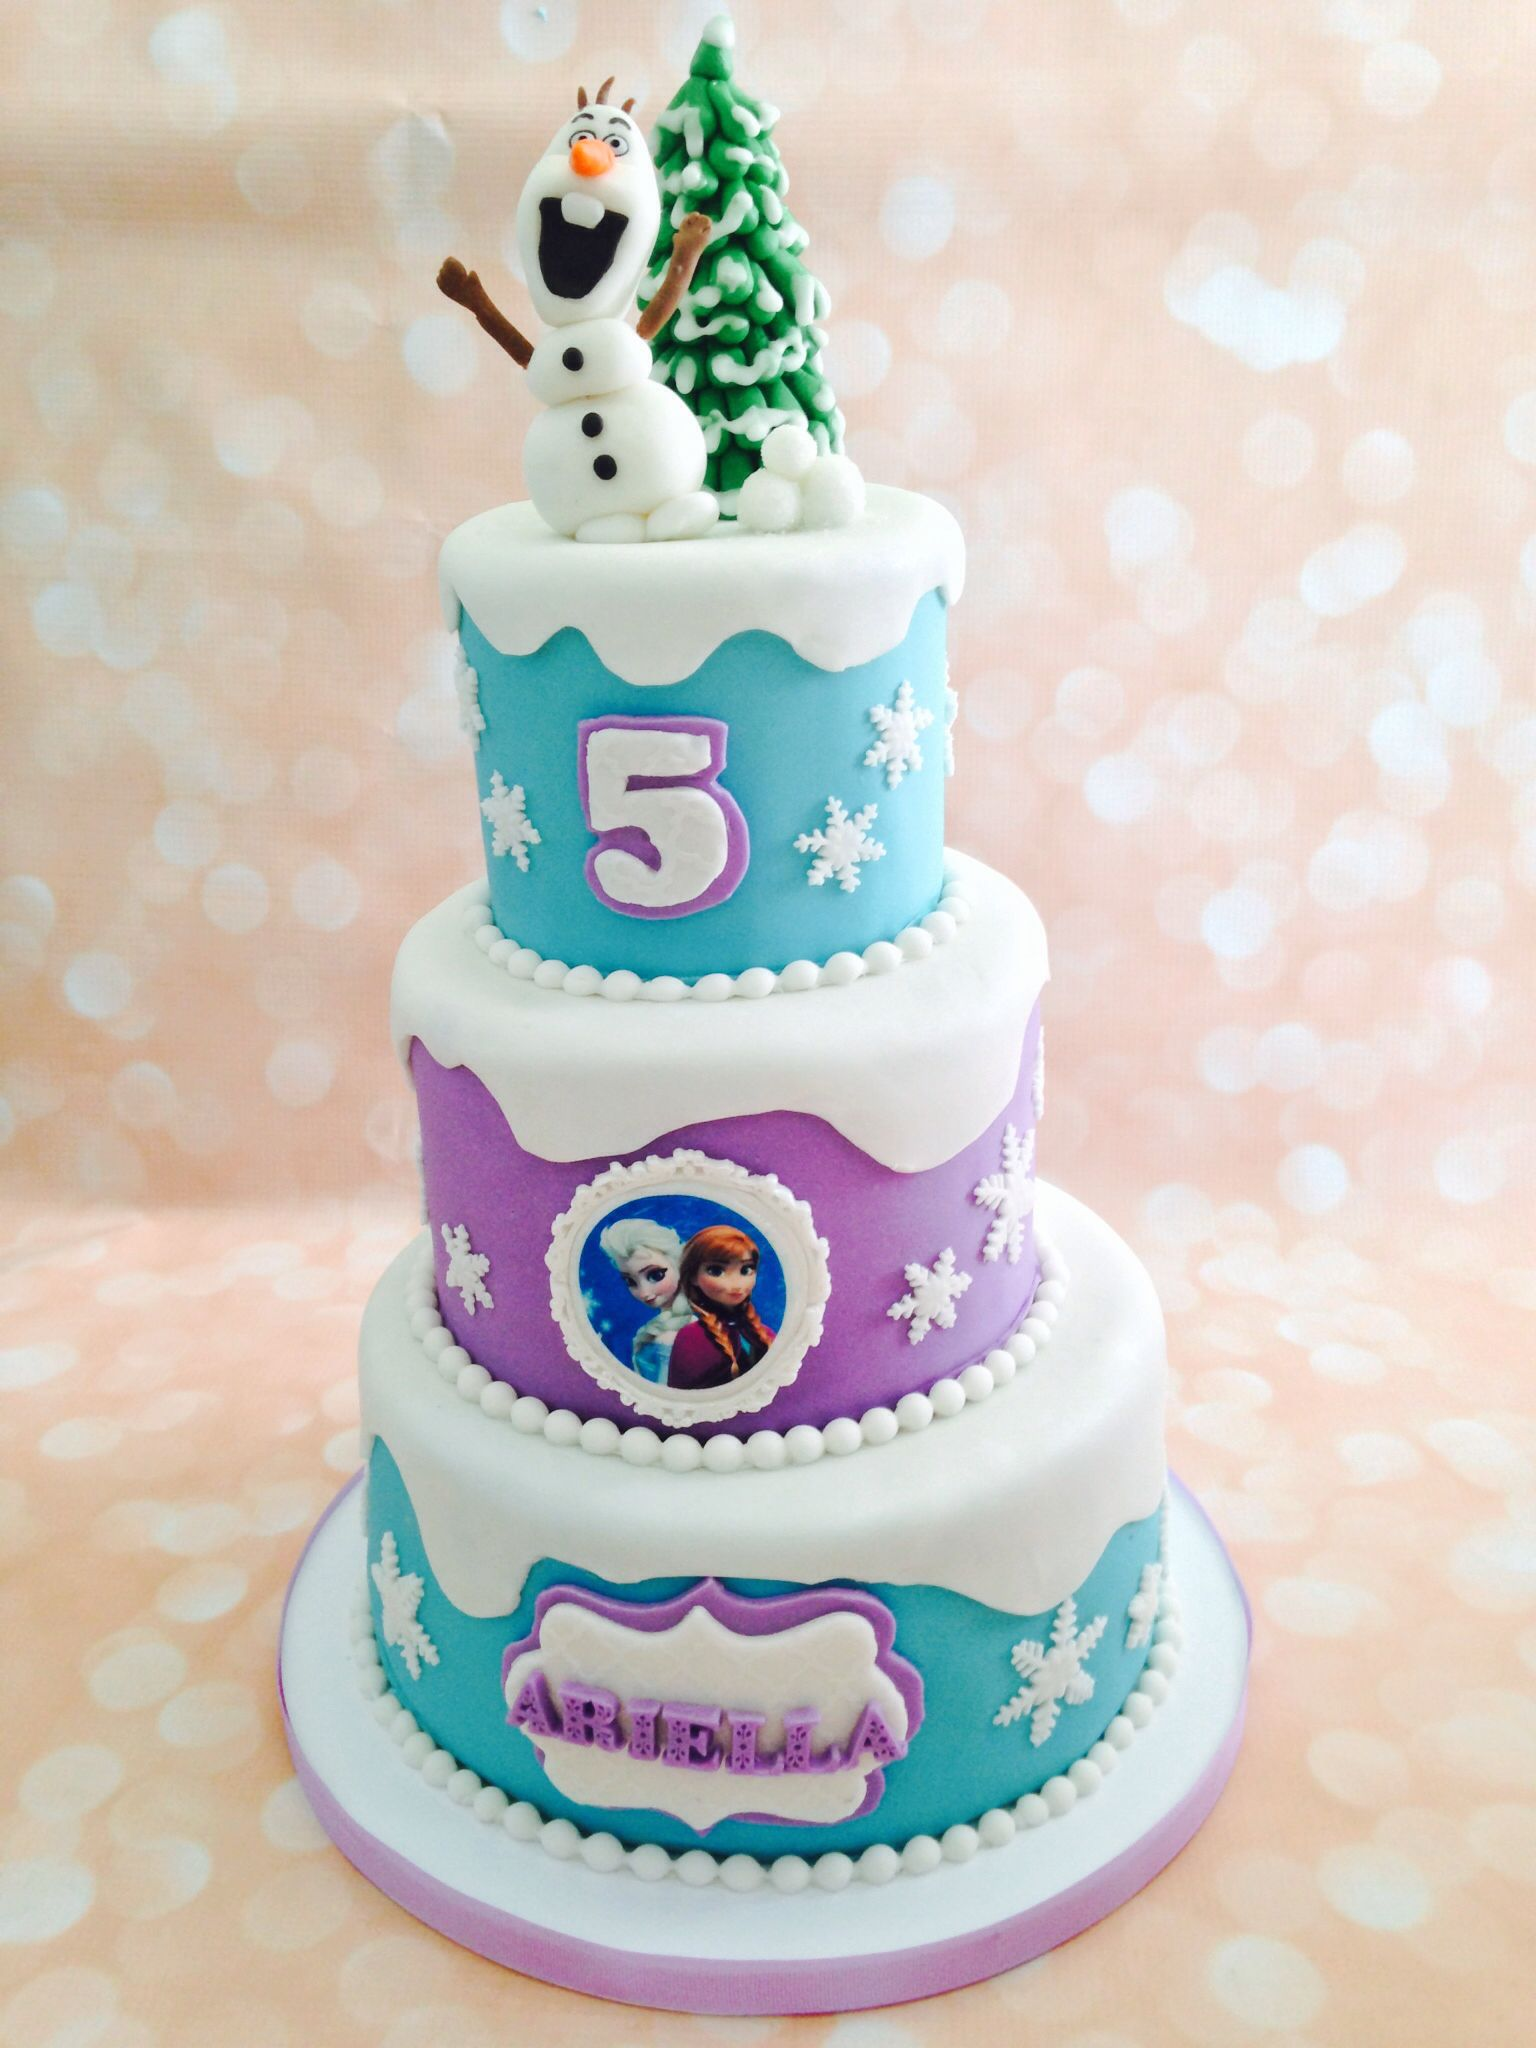 Frozen party 3 tier cake Frozen Party ideas Pinterest ...